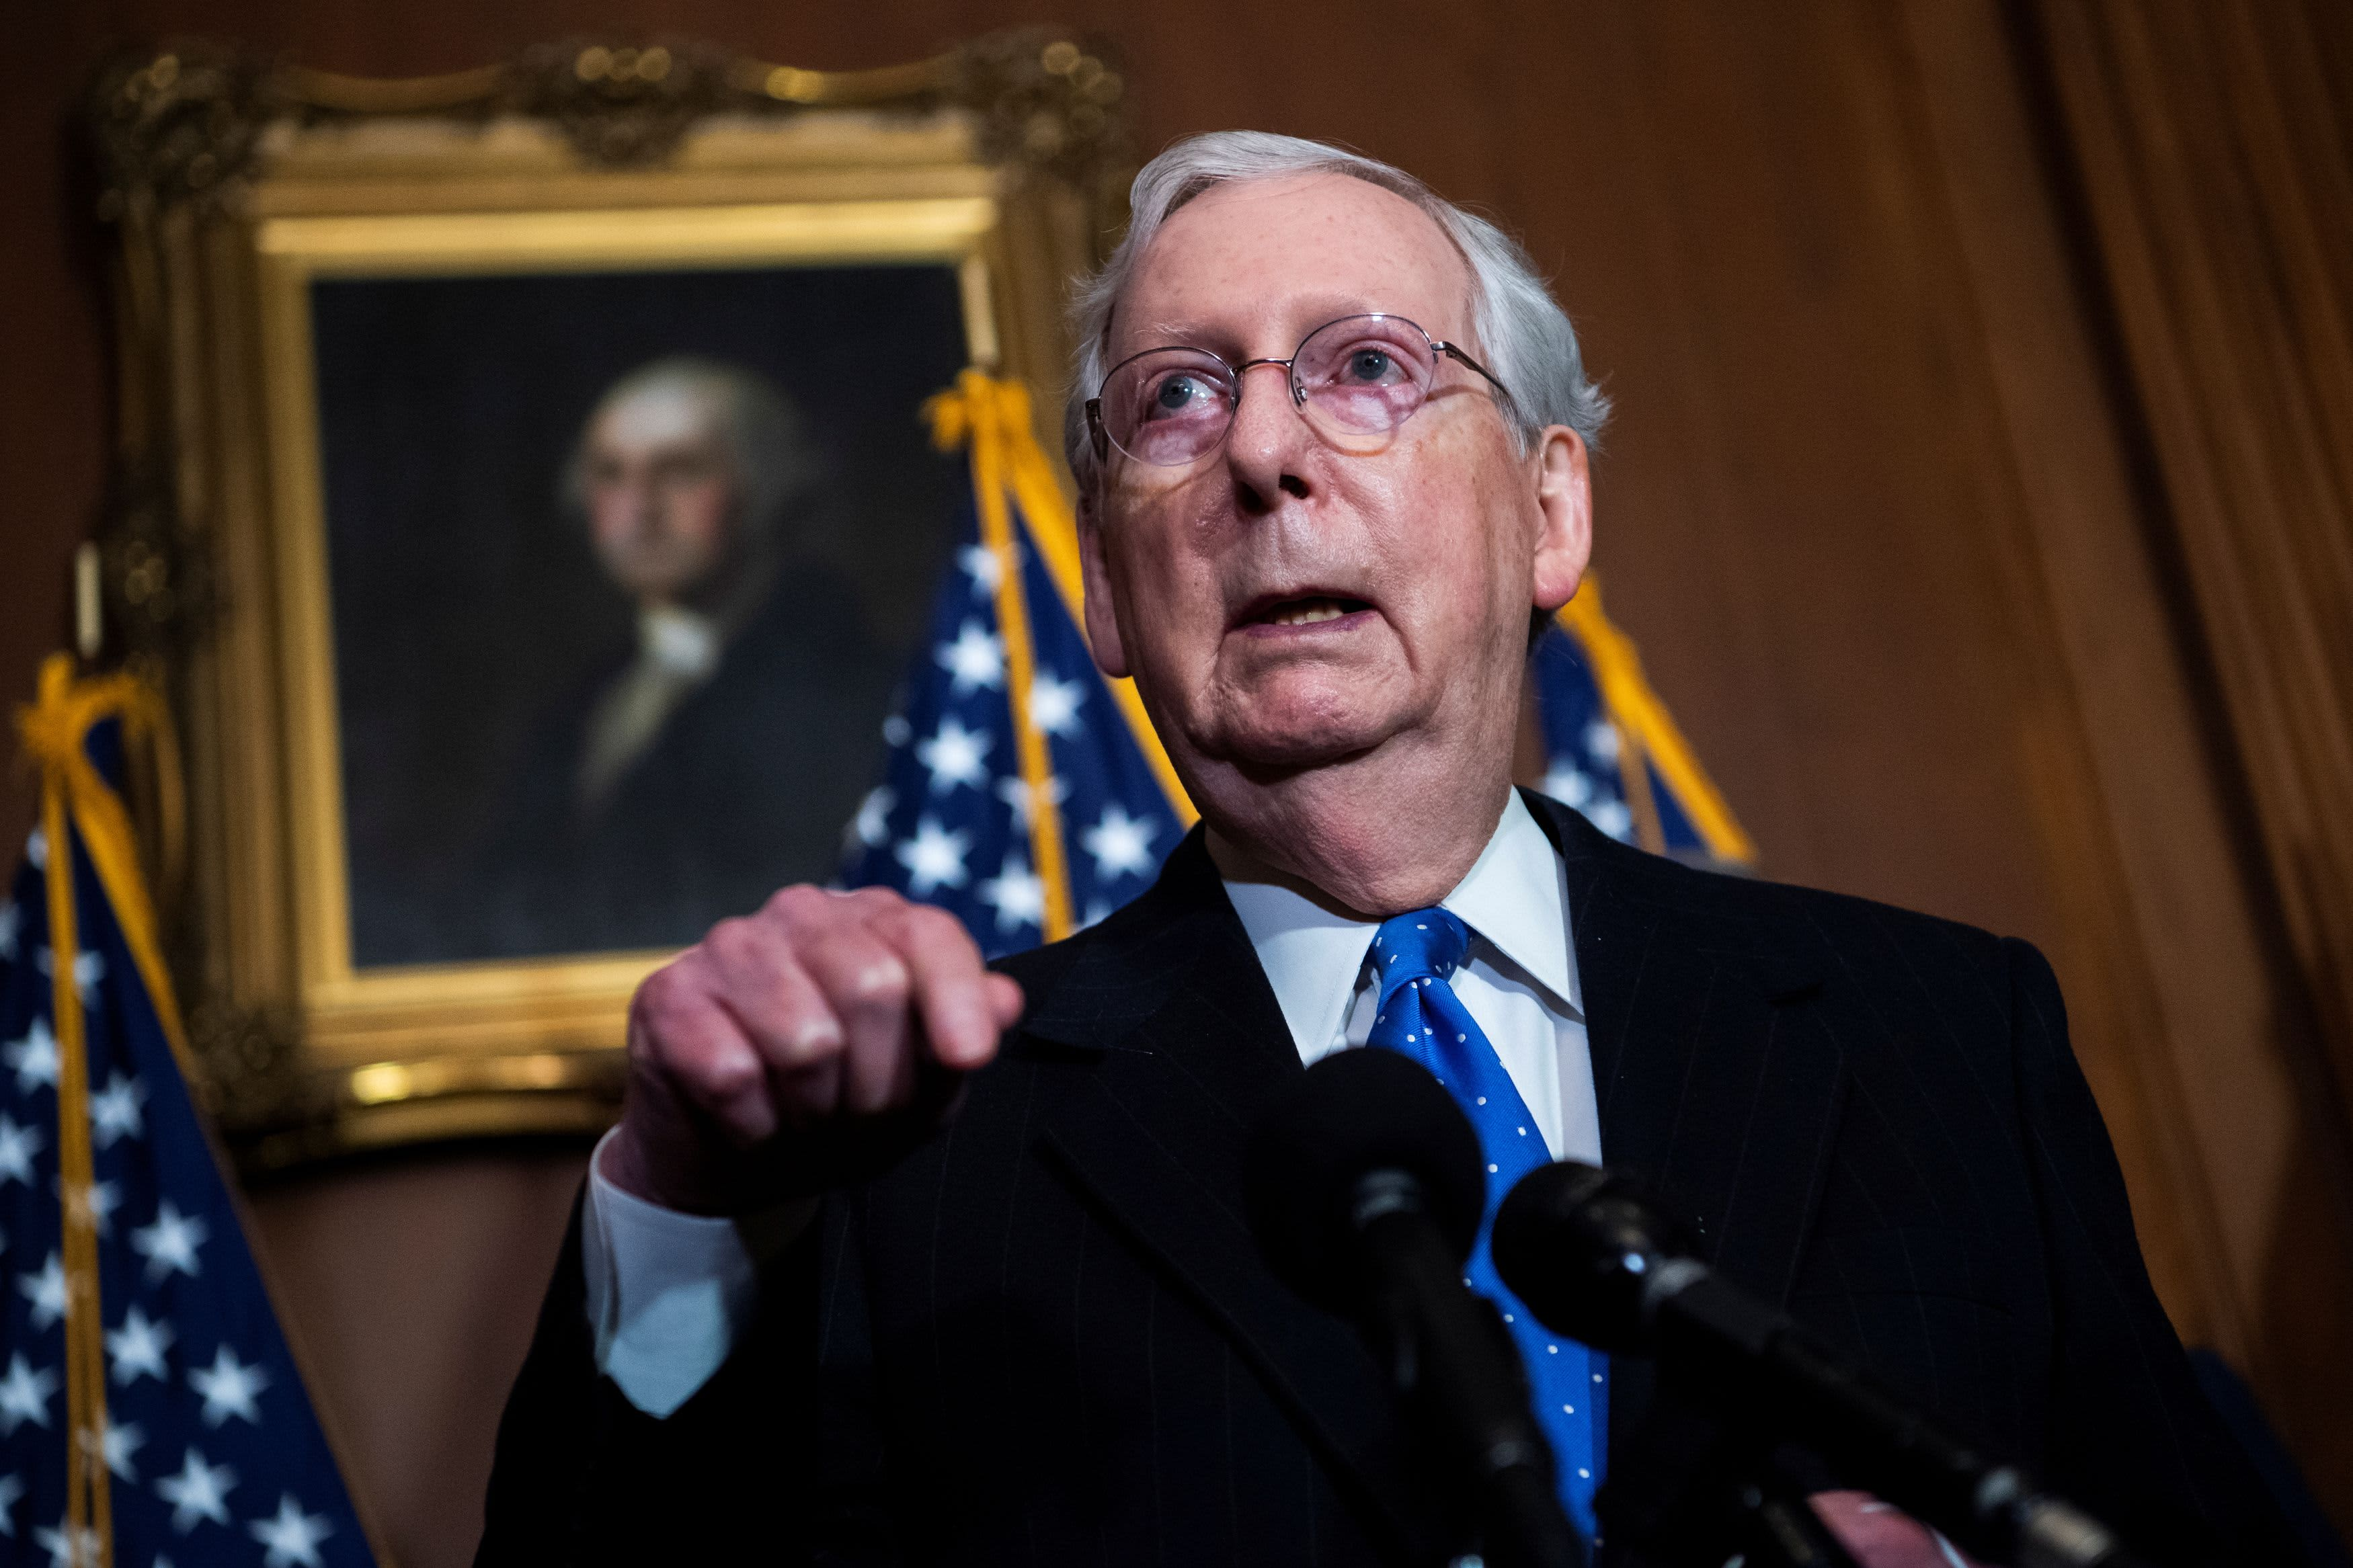 After weeks of delay Senate GOP leader McConnell congratulates Joe Biden following Electoral College vote – CNBC